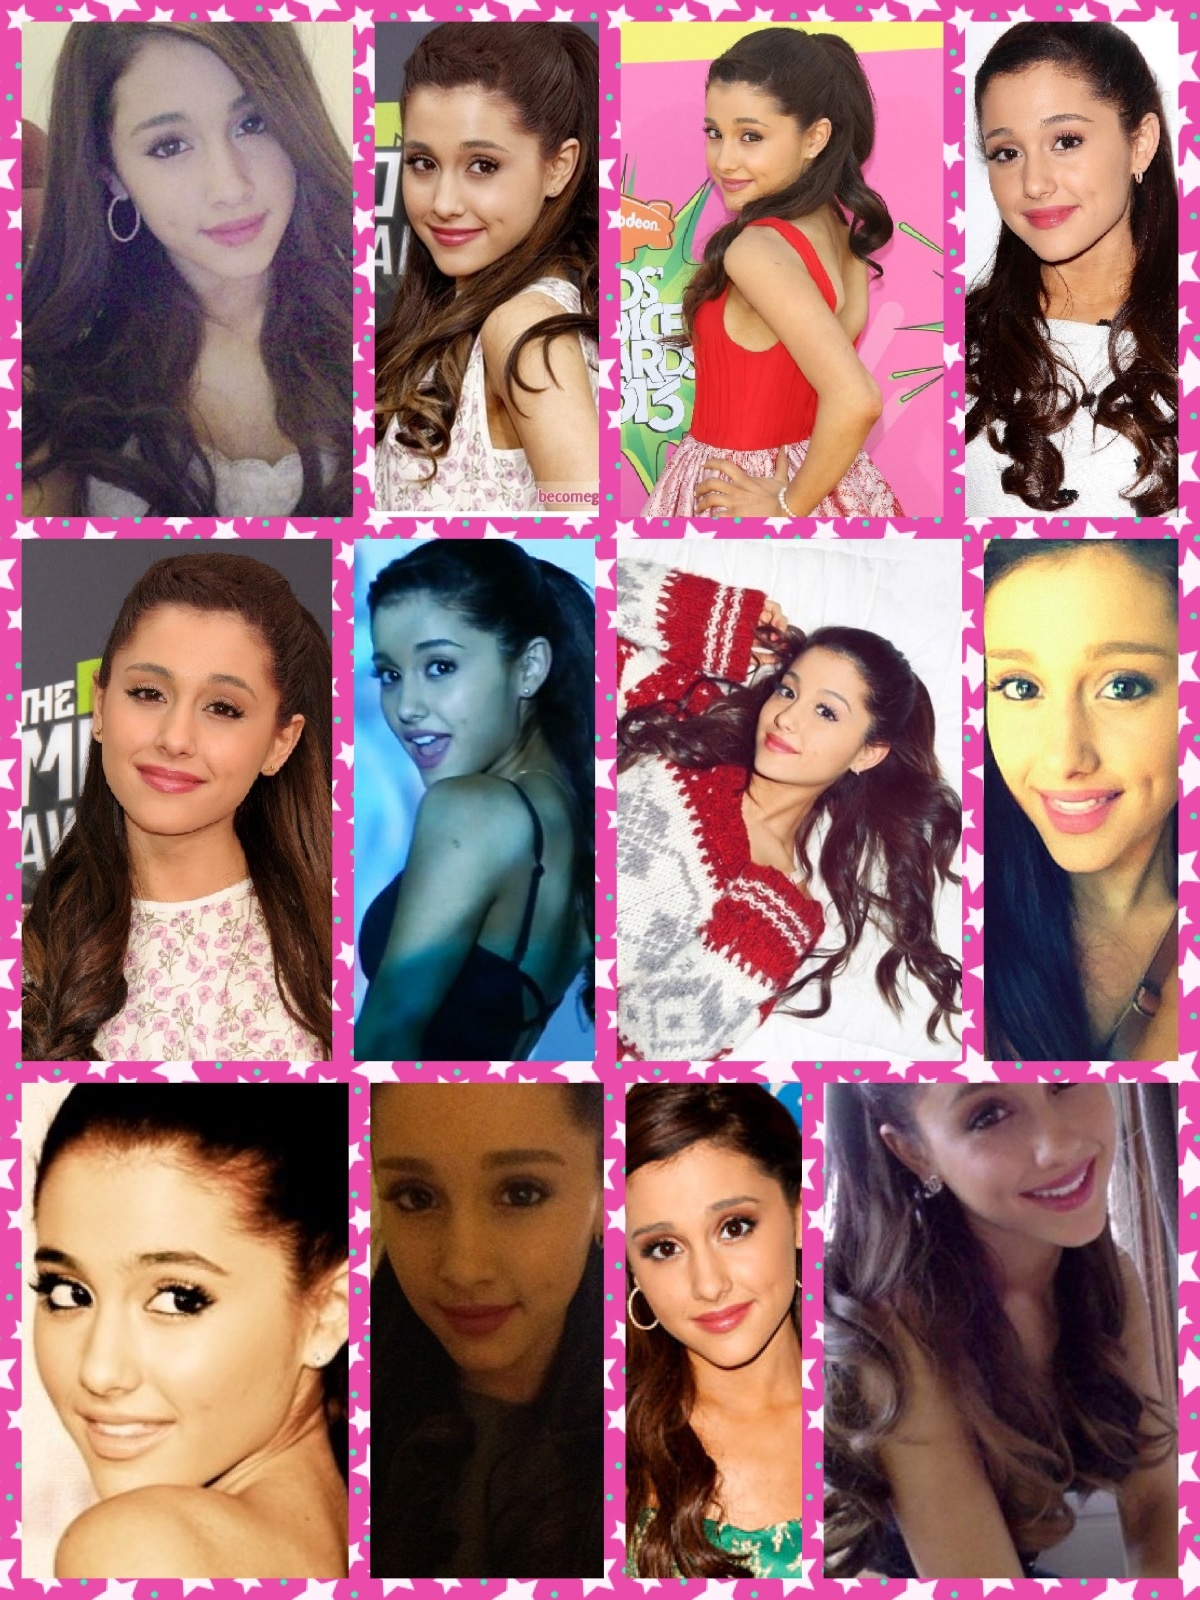 Ariana Grande Tumblr Collage 2014 Ariana G. Colla...